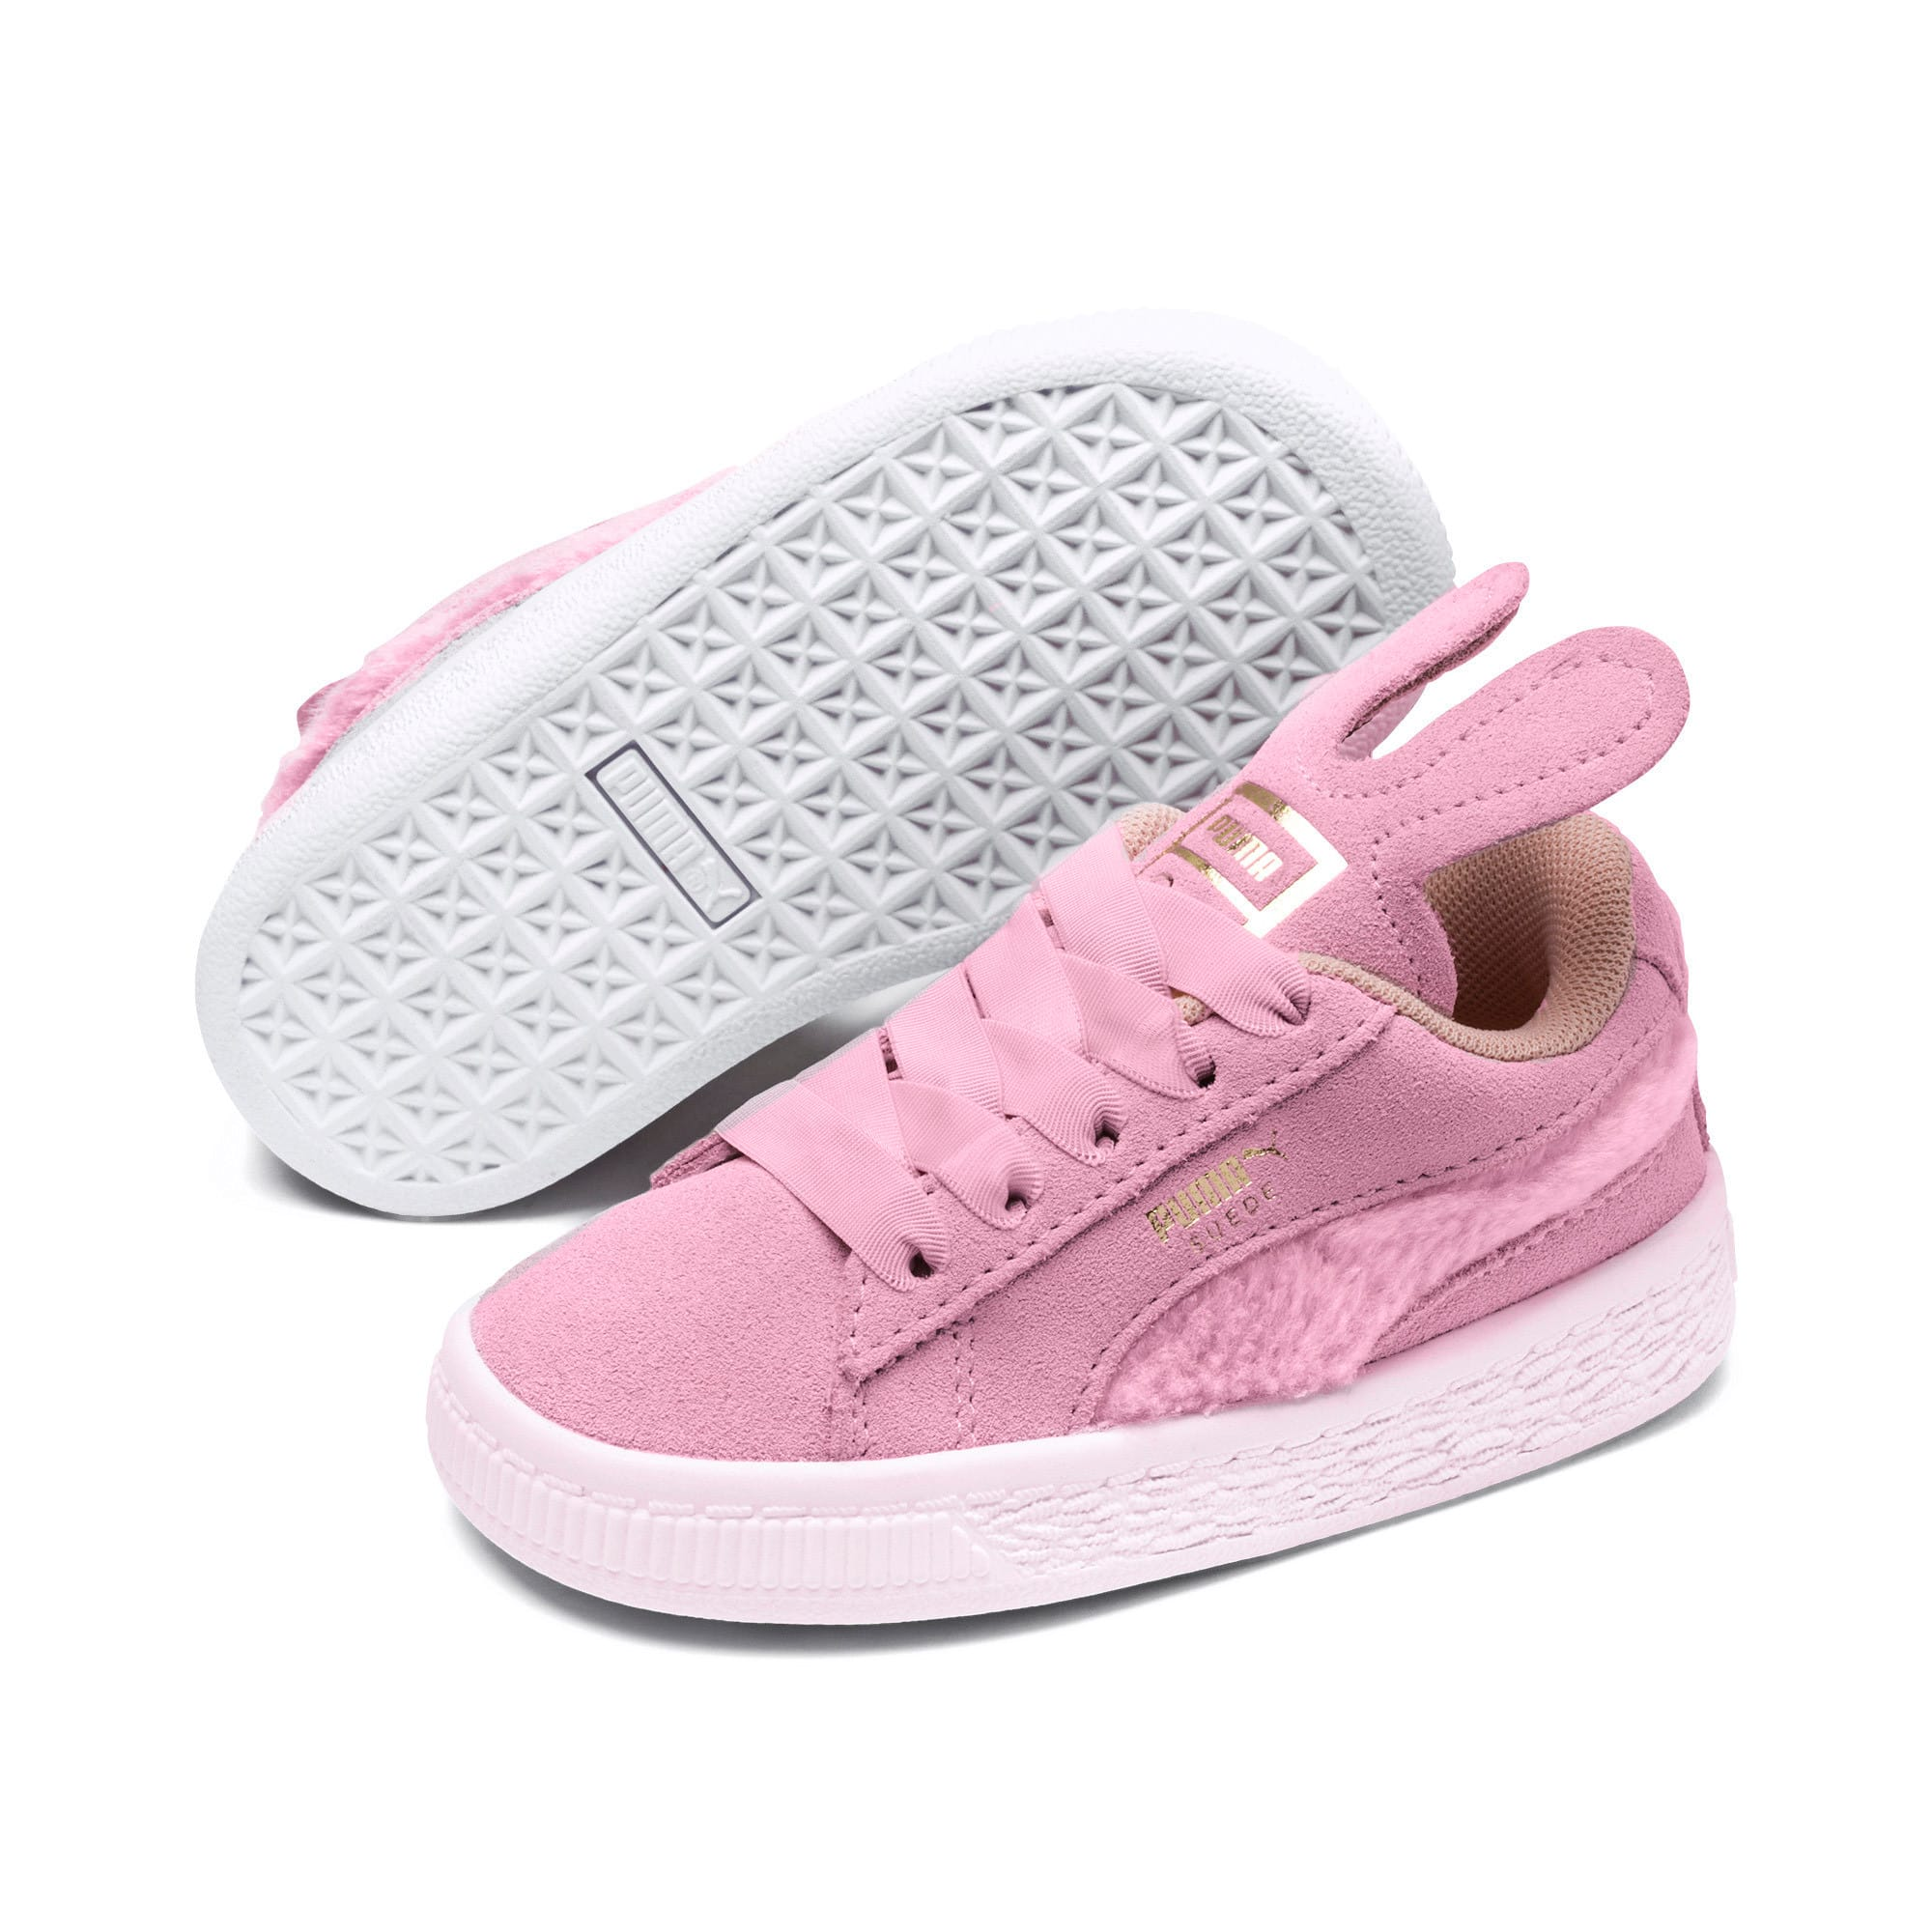 Thumbnail 2 of Suede Easter Kids' Trainers, Pale Pink-Coral Cloud, medium